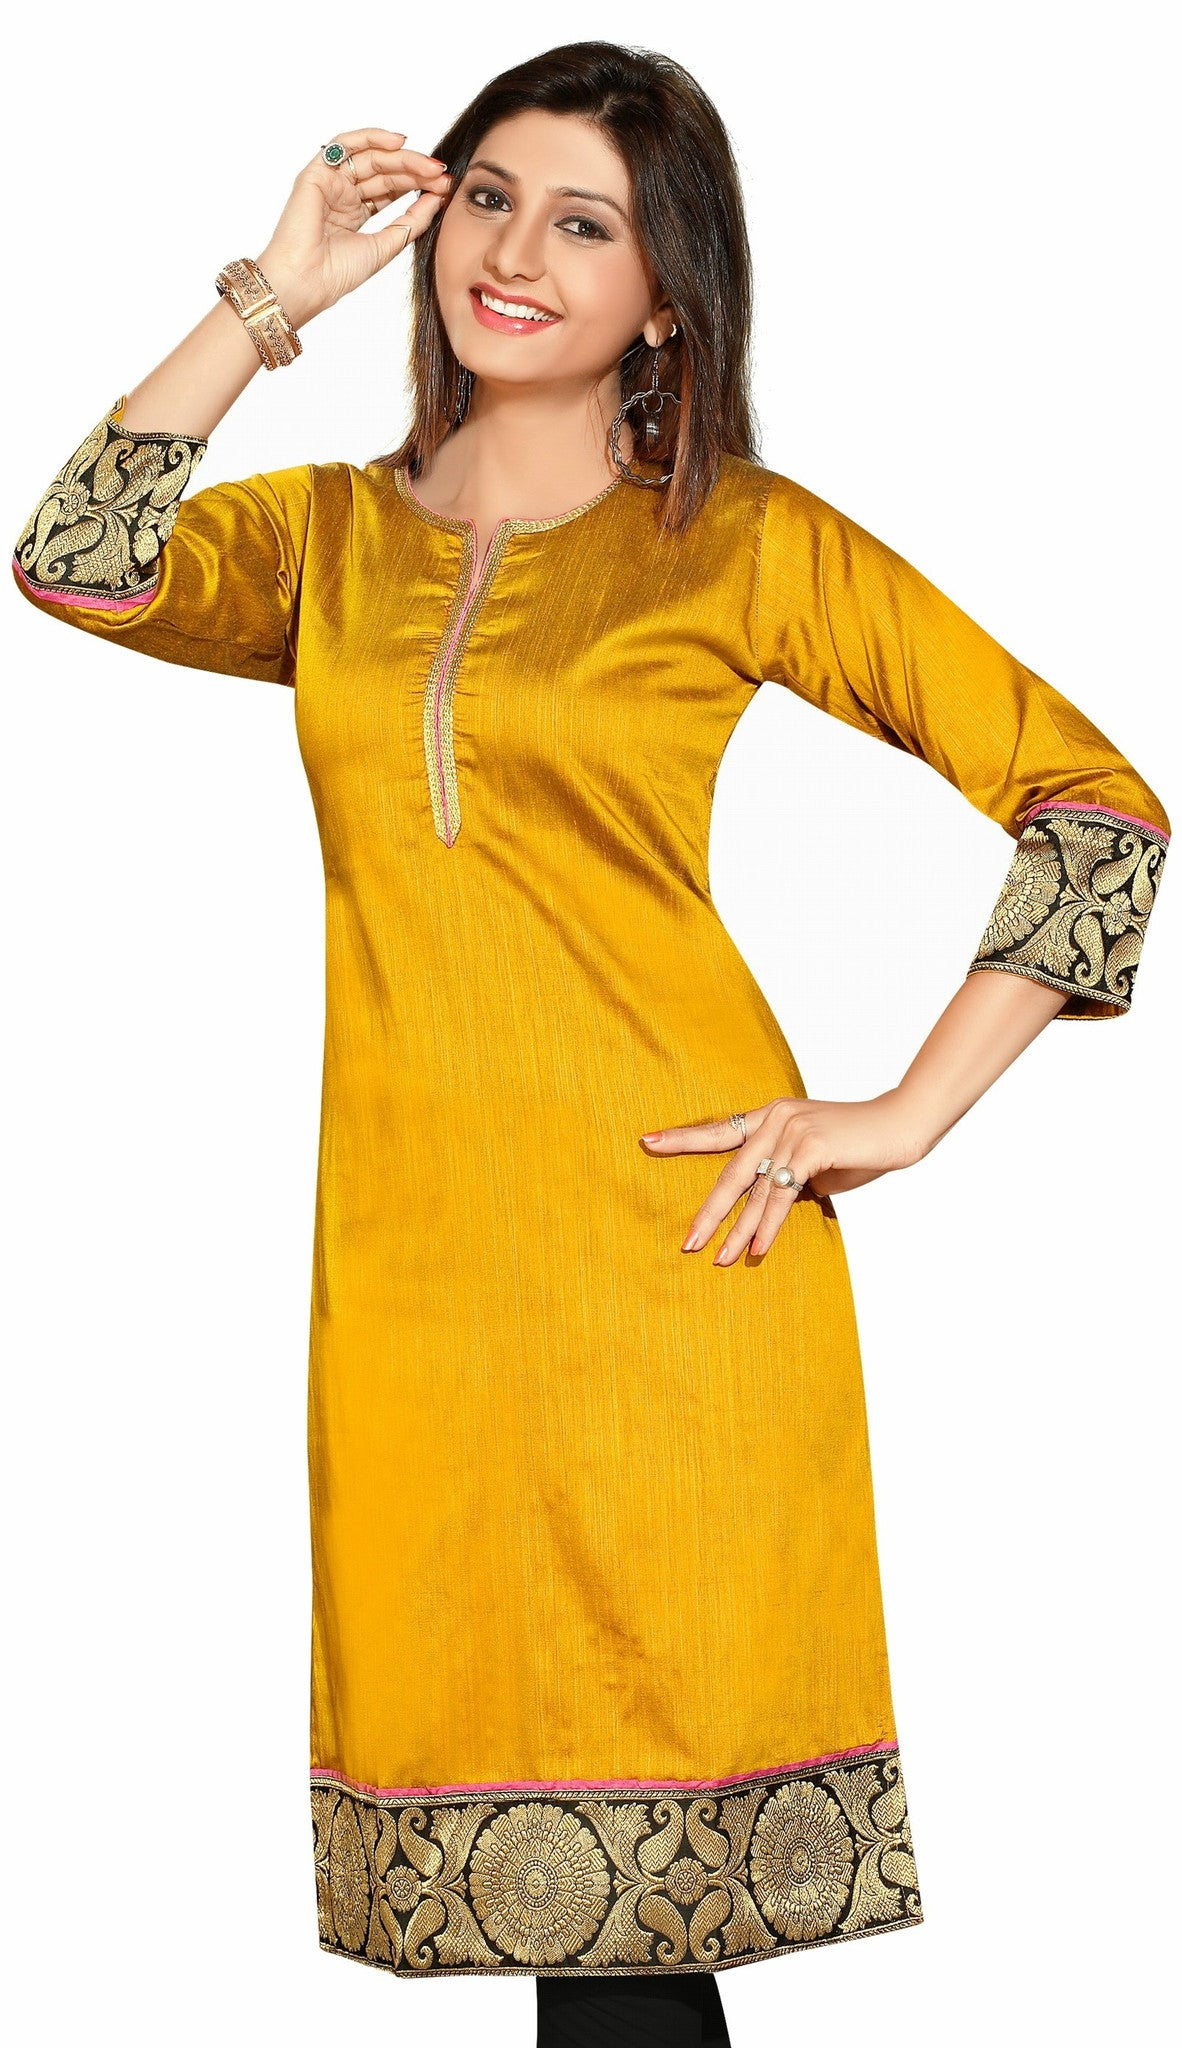 Marvelous Exotic Mustard Color Cotton Silk 3/4th Sleeves kurti - Boutique4India Inc.